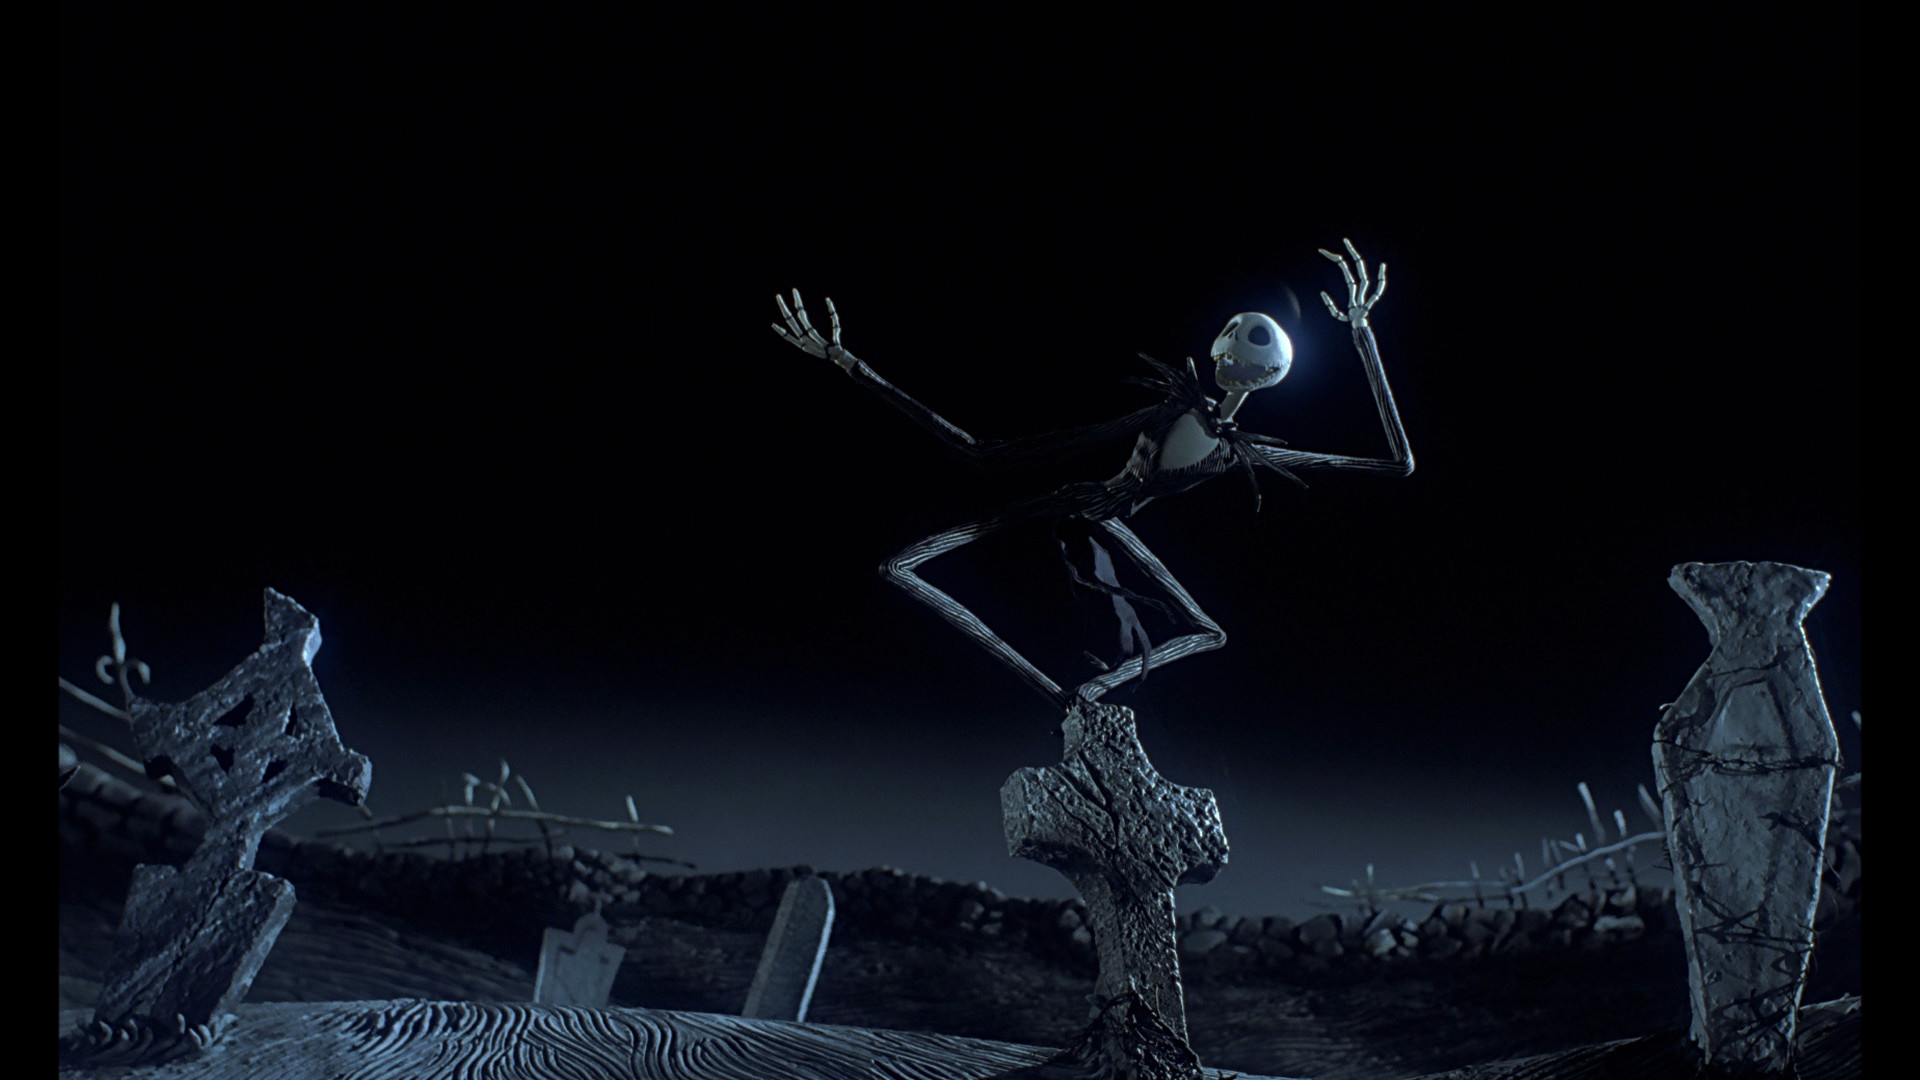 … movies the nightmare before christmas wallpapers hd desktop and …